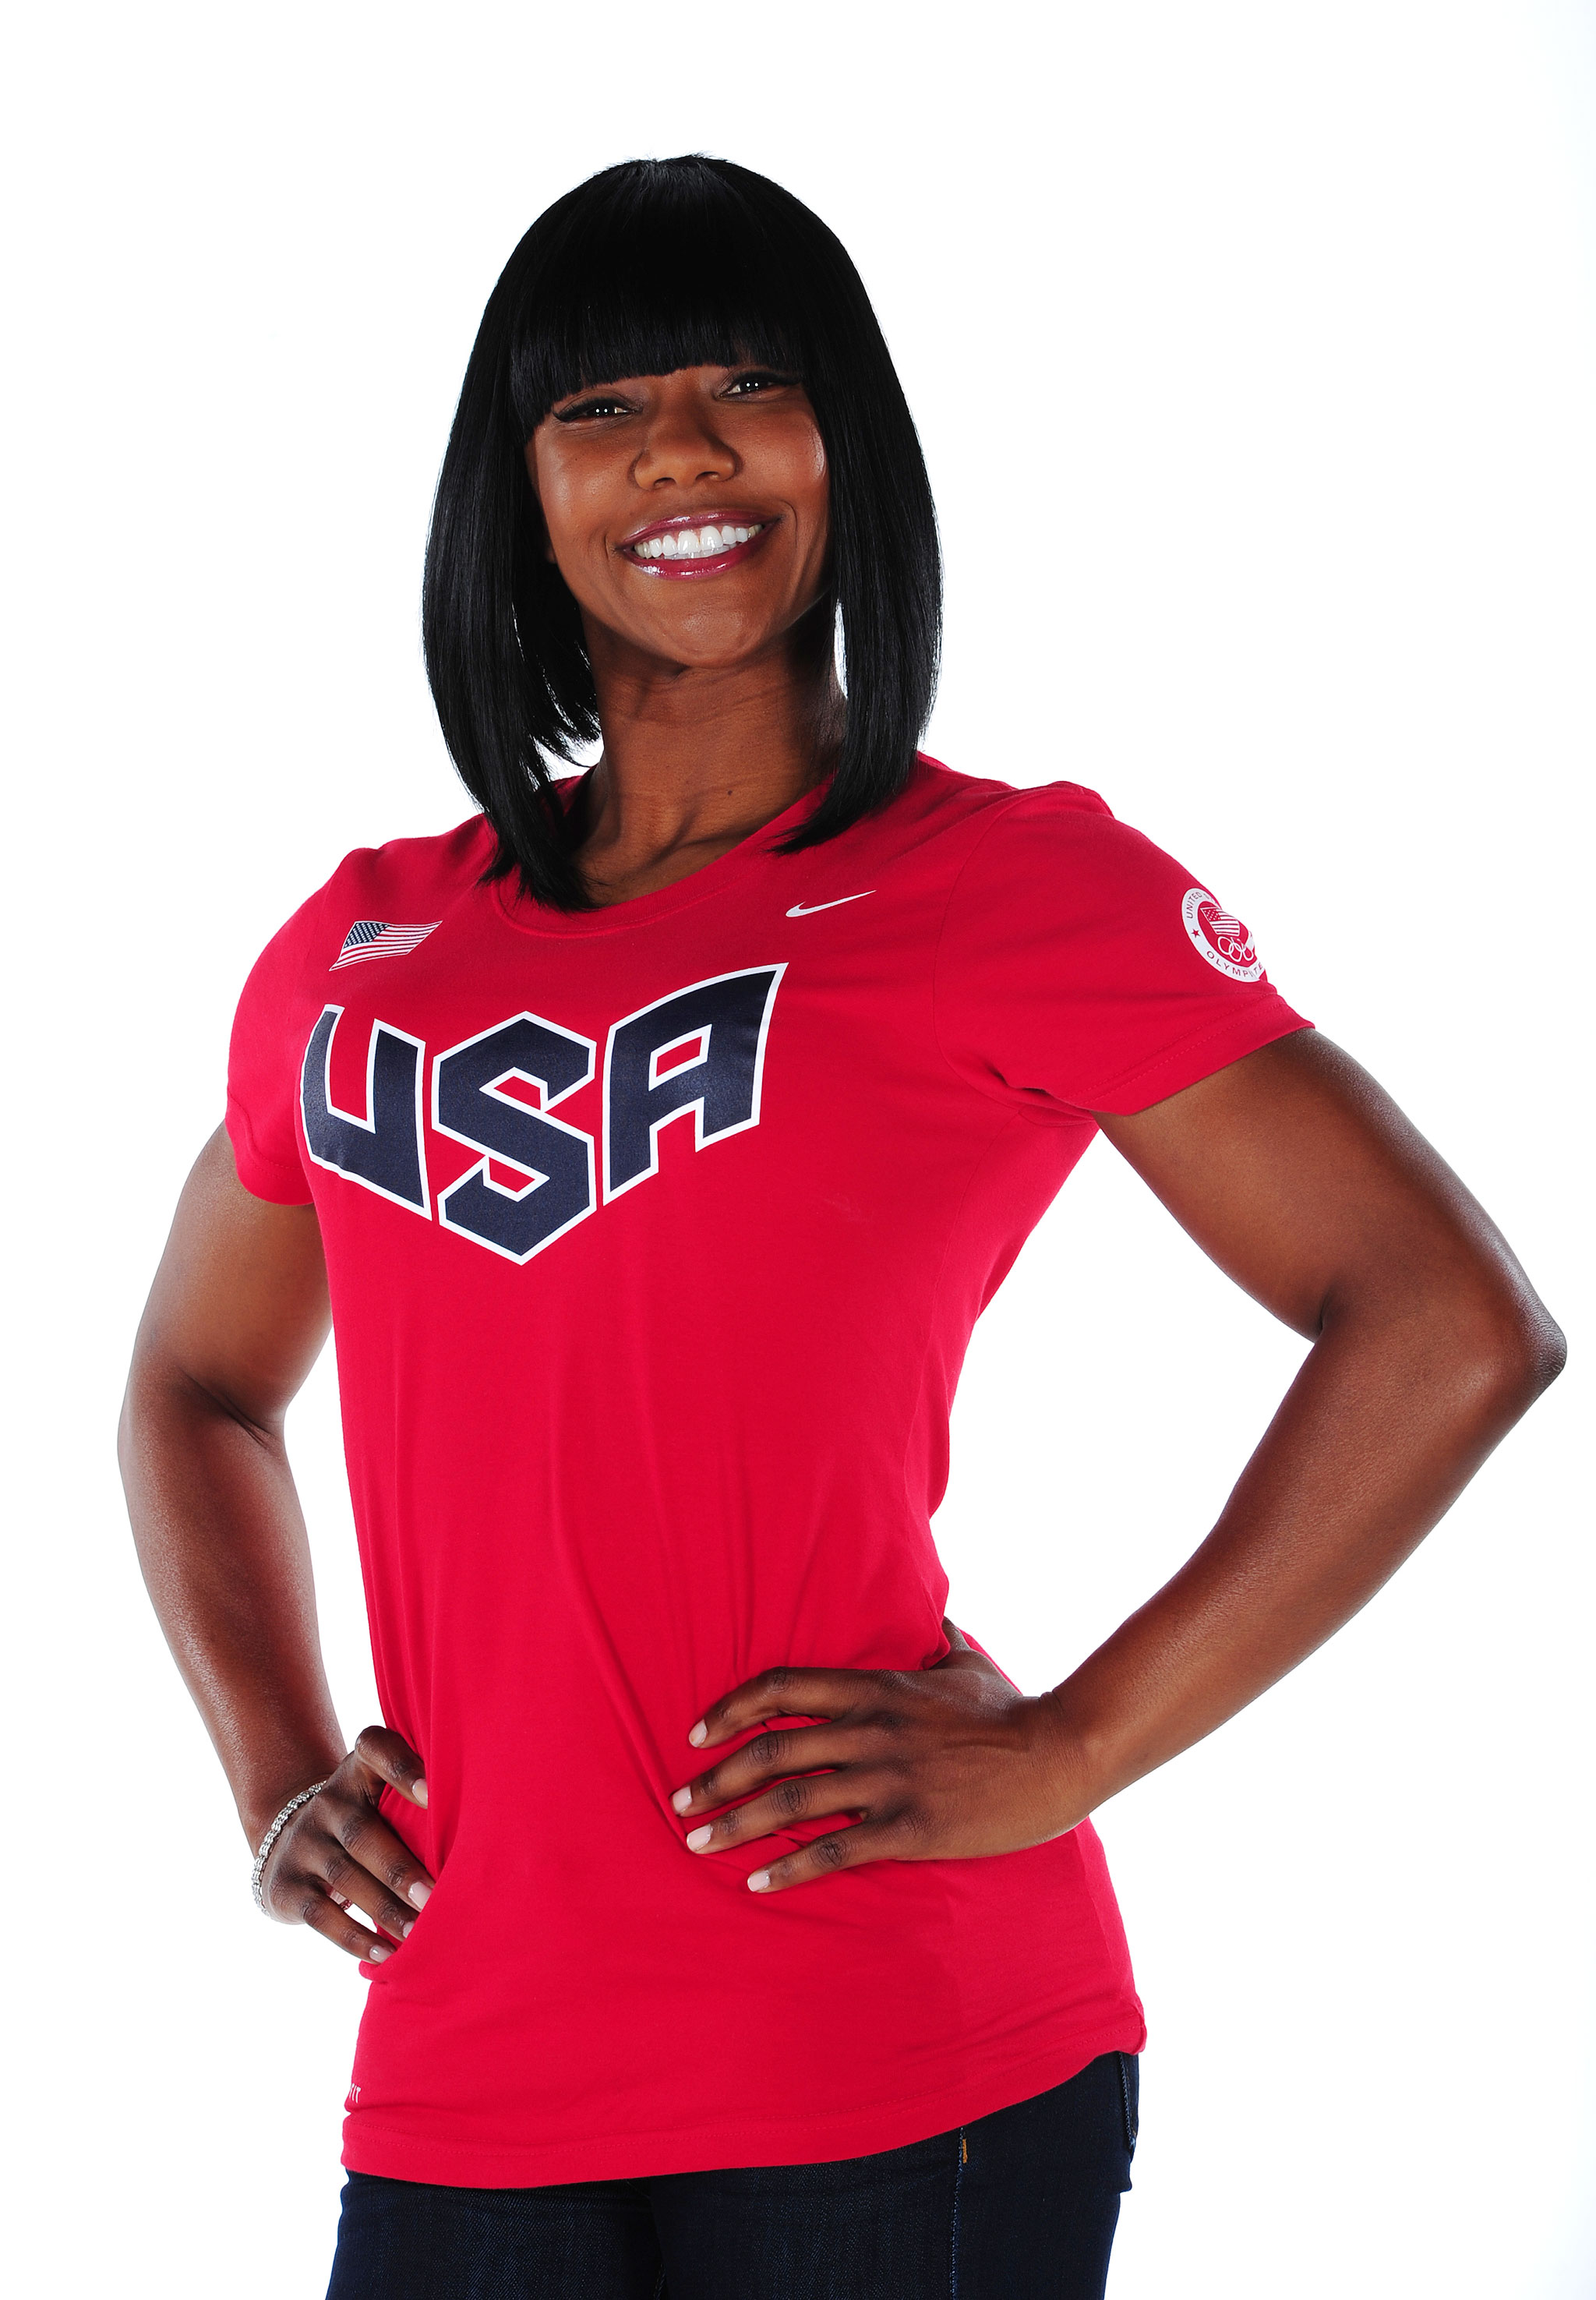 Carmelita Jeter has had plenty to smile about in her decorated track career, including capturing three medals at the 2012 London Olympics.